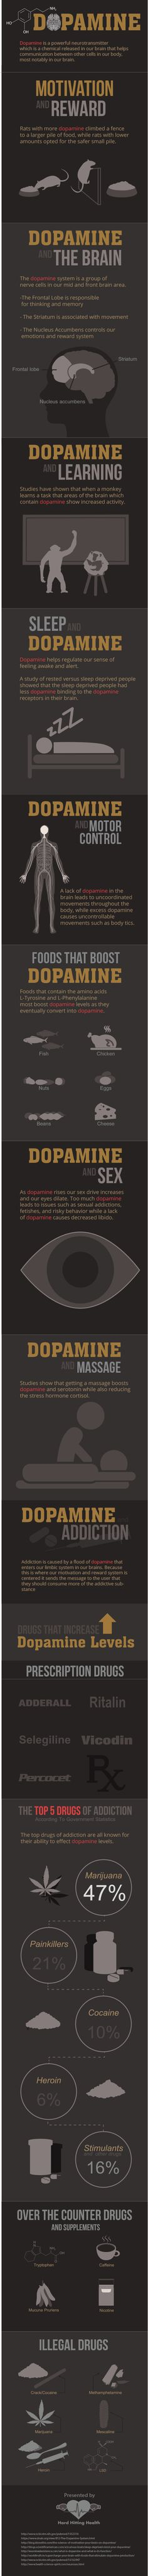 Dopamine is a powerful neurotransmitter which is a chemical released in our brain that helps communication between other cells in our body, most notably in our